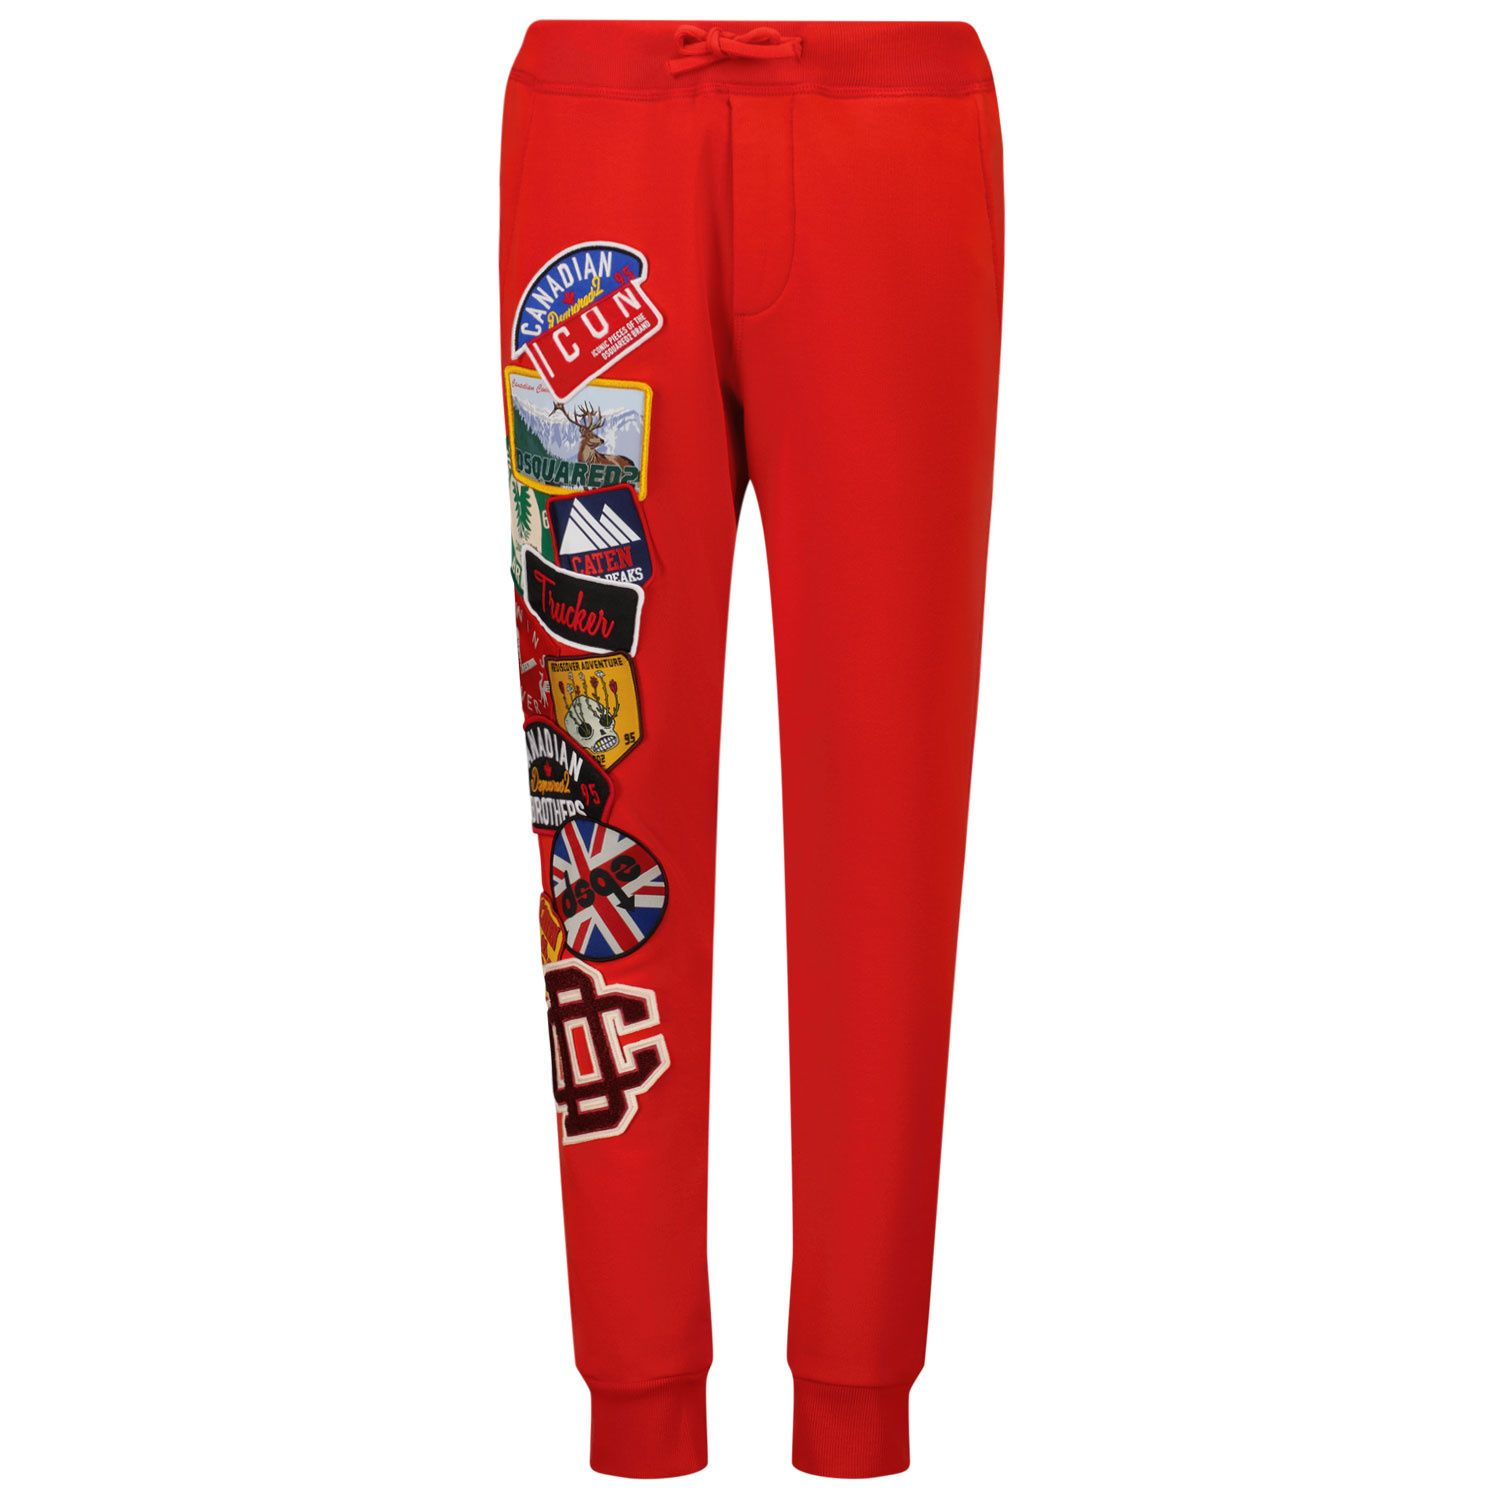 Picture of Dsquared2 DQ0338 kids jeans red